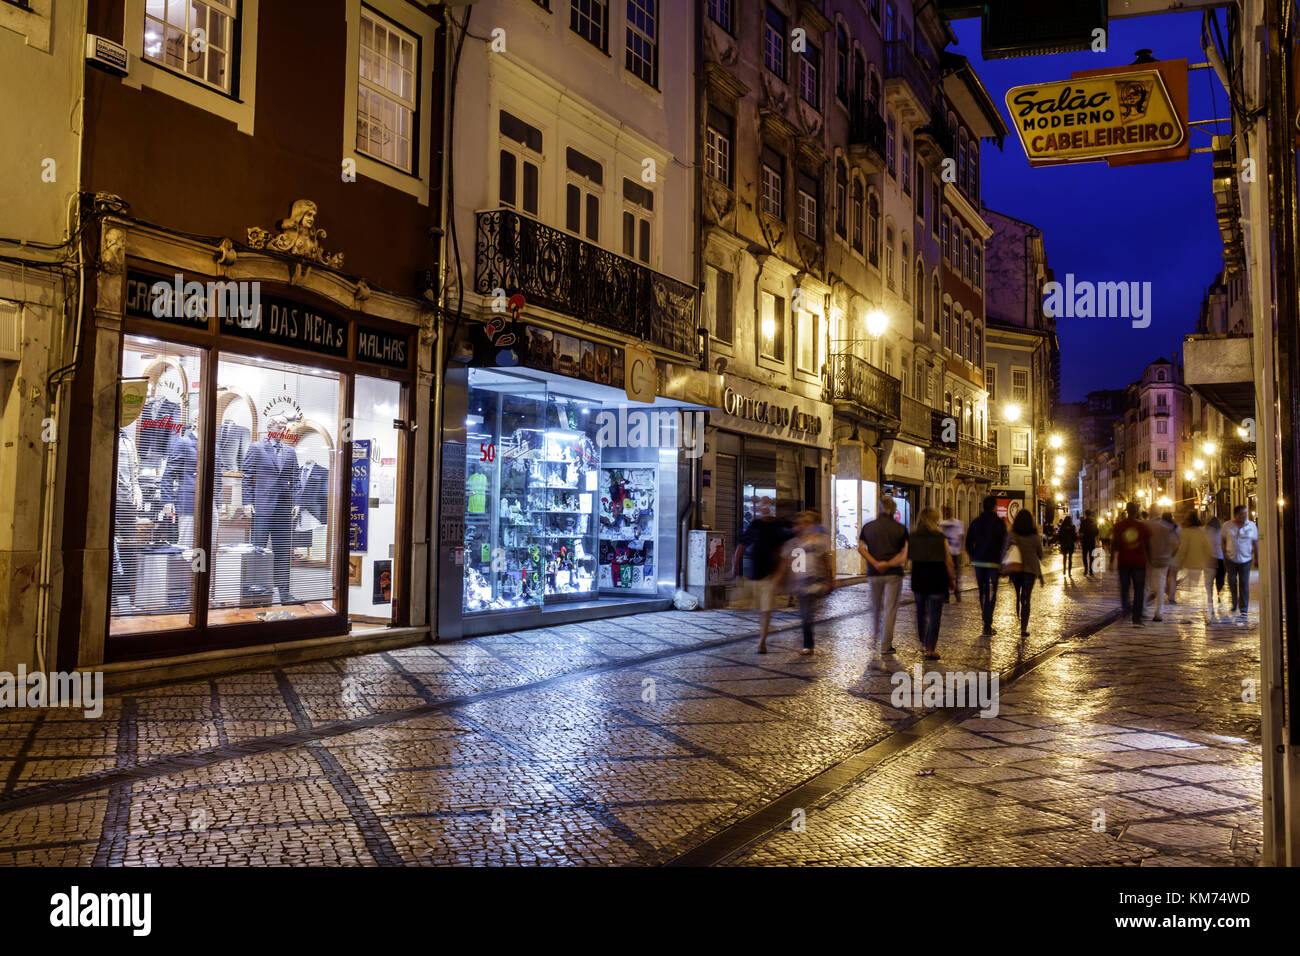 Coimbra Portugal historic center Rua Ferreira Borges business commercial district storefronts shopping pedestrian - Stock Image